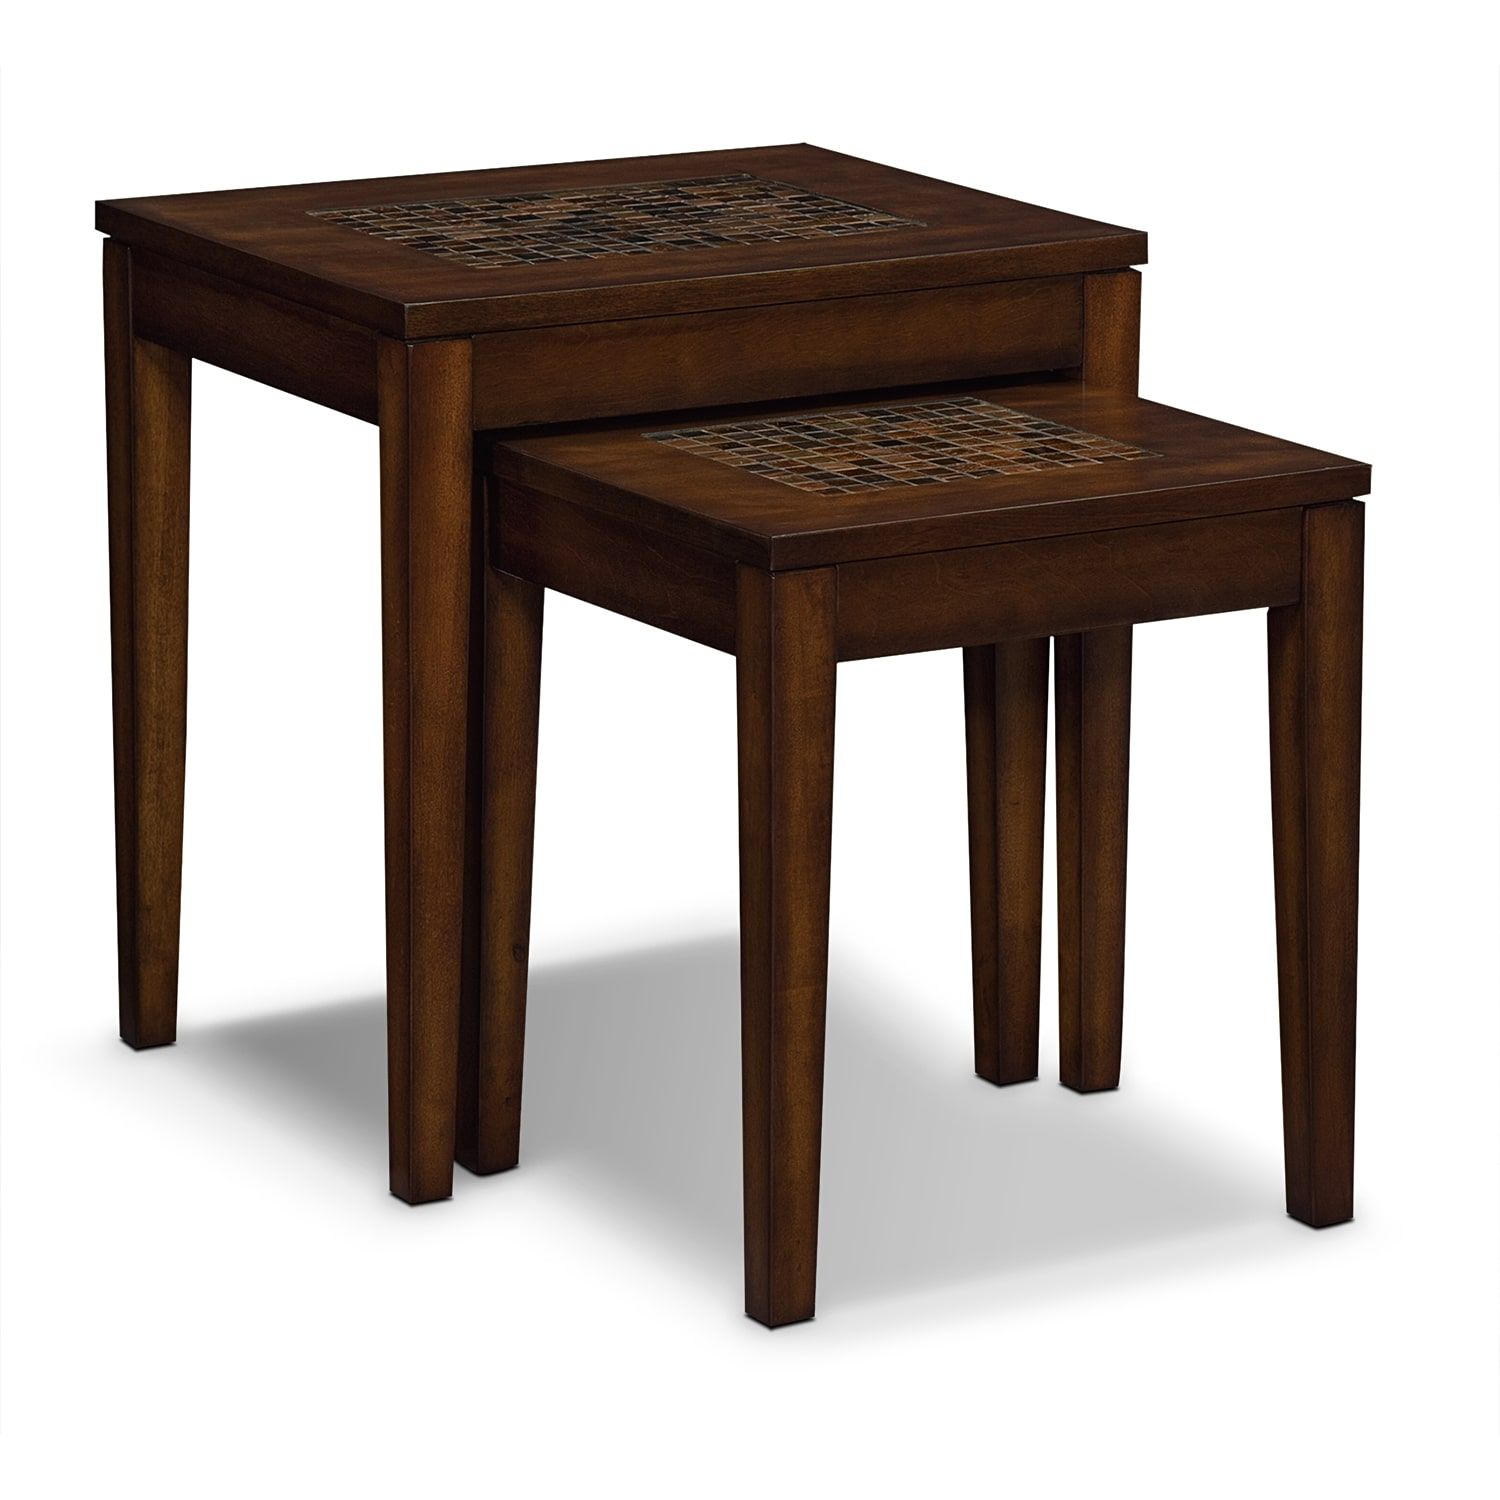 Carson nesting tables value city furniture for Occasional furniture